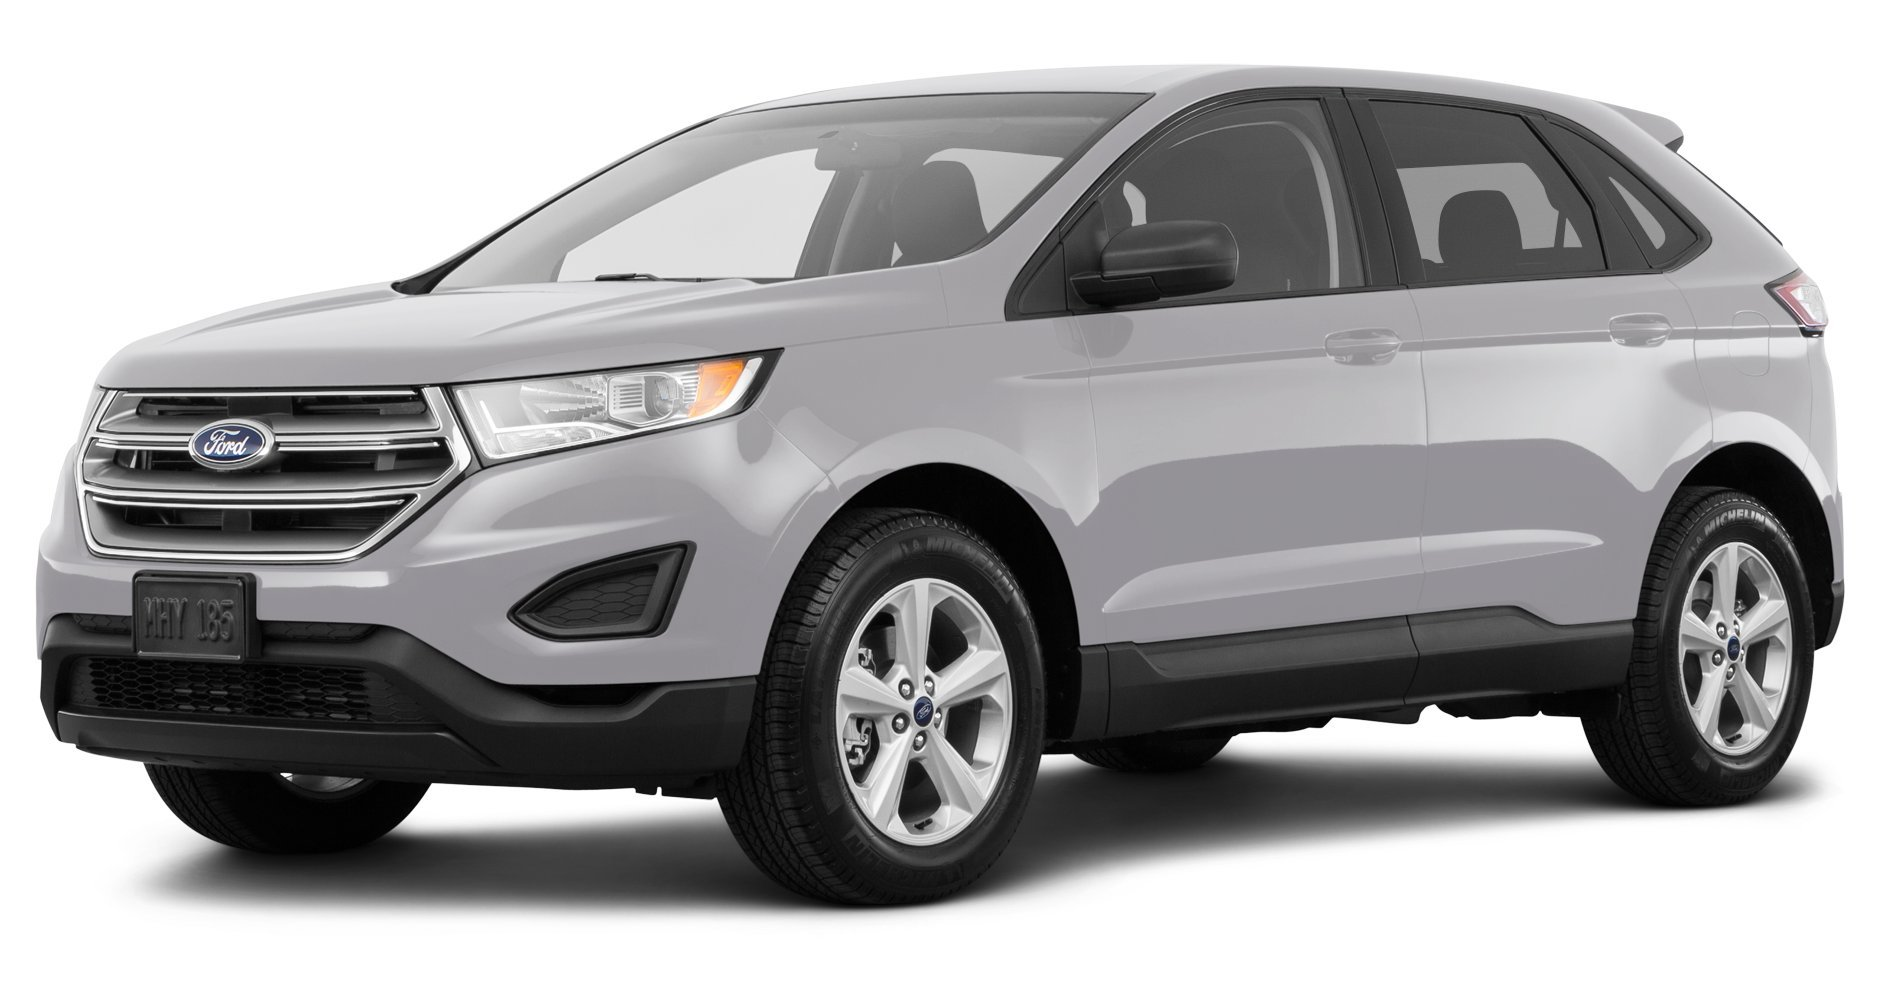 2016 ford edge reviews images and specs vehicles. Black Bedroom Furniture Sets. Home Design Ideas